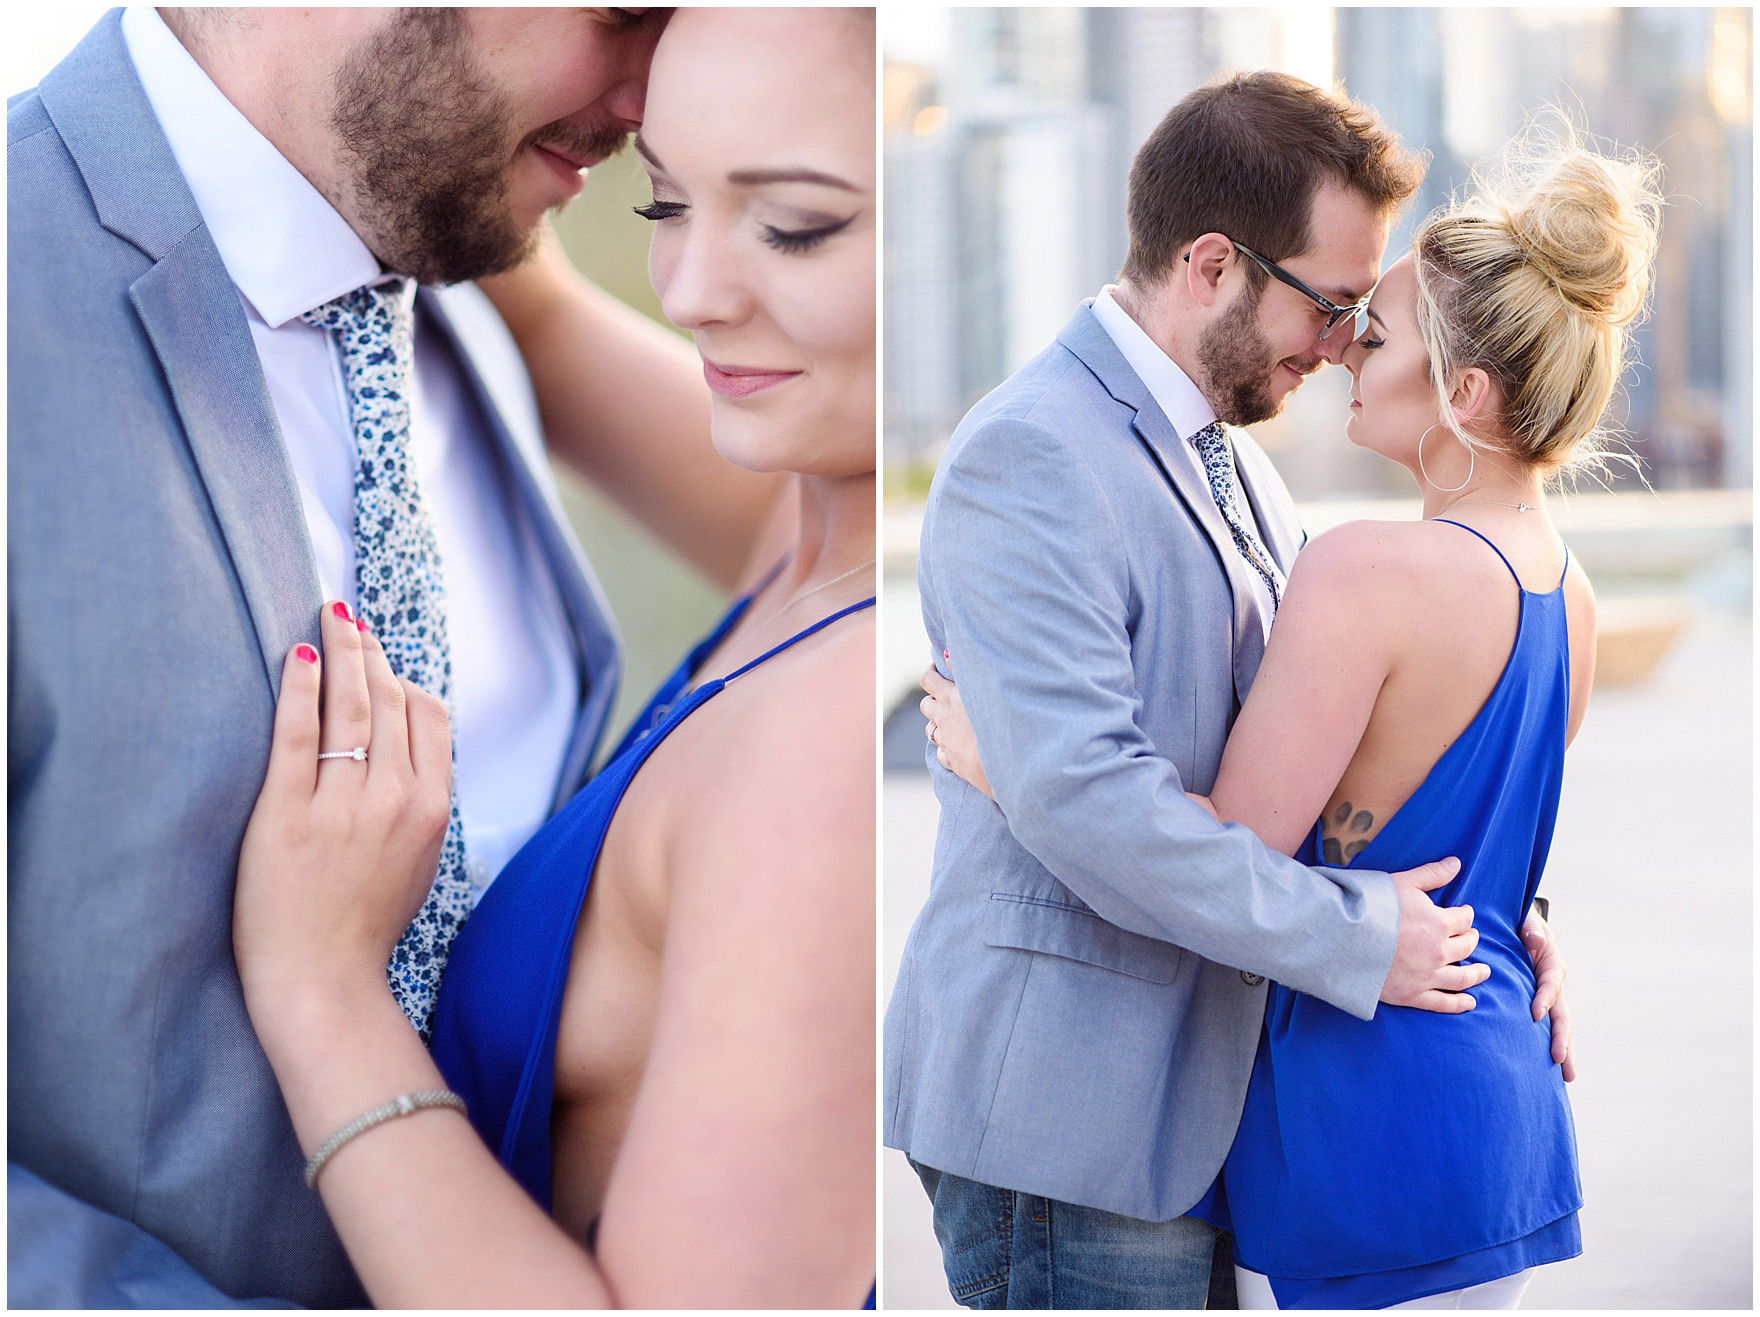 A bride and groom to be embrace during a Chicago Navy Pier engagement photography session.